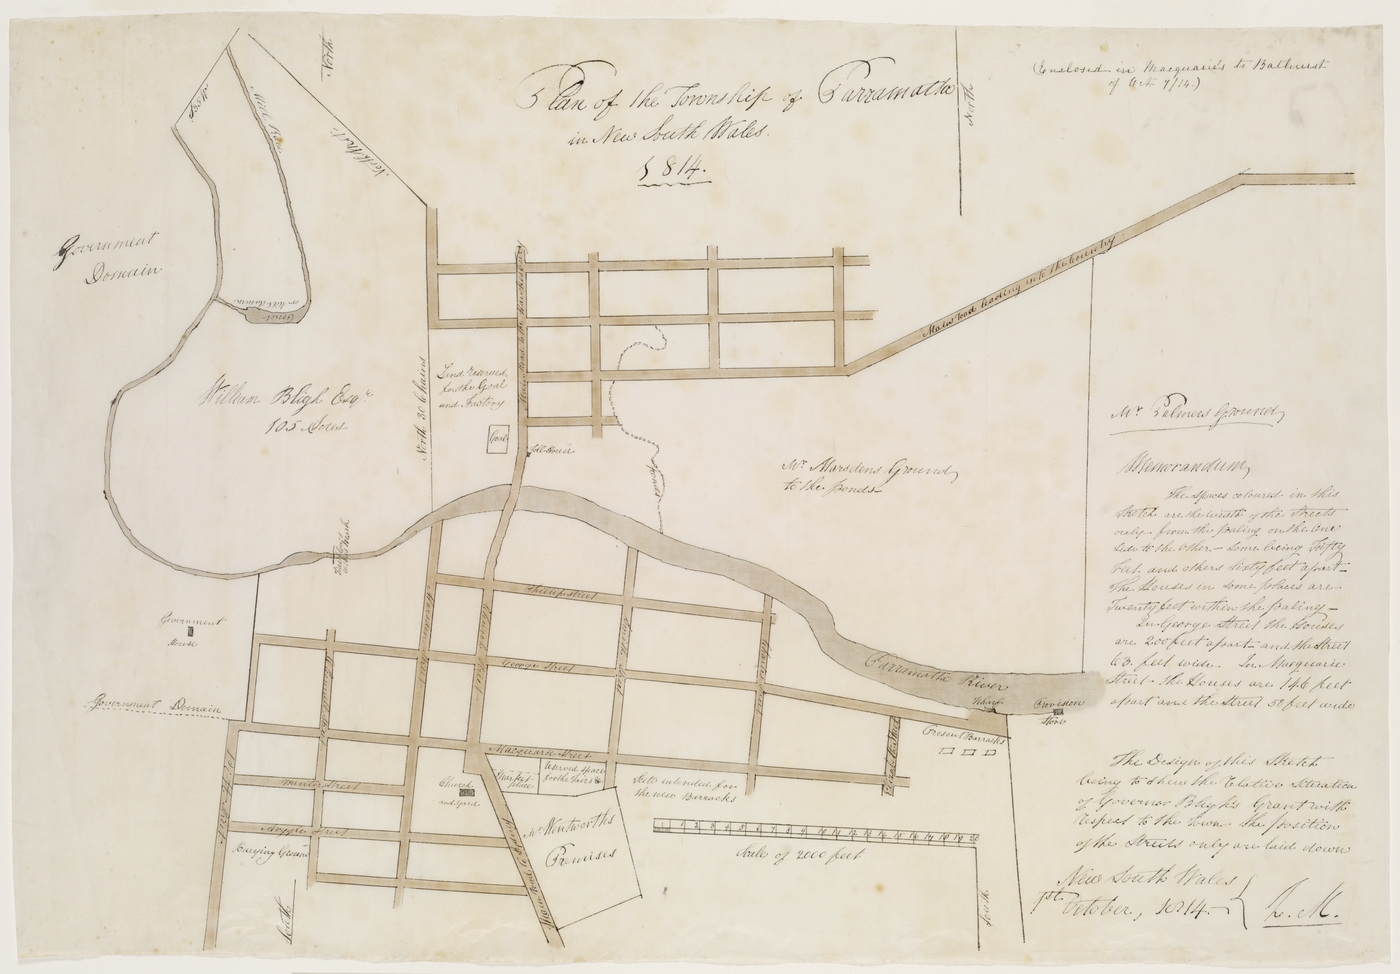 Plan of the Township of Parramatta in New South Wales 1814 [cartographic Material] / L. Macquarie